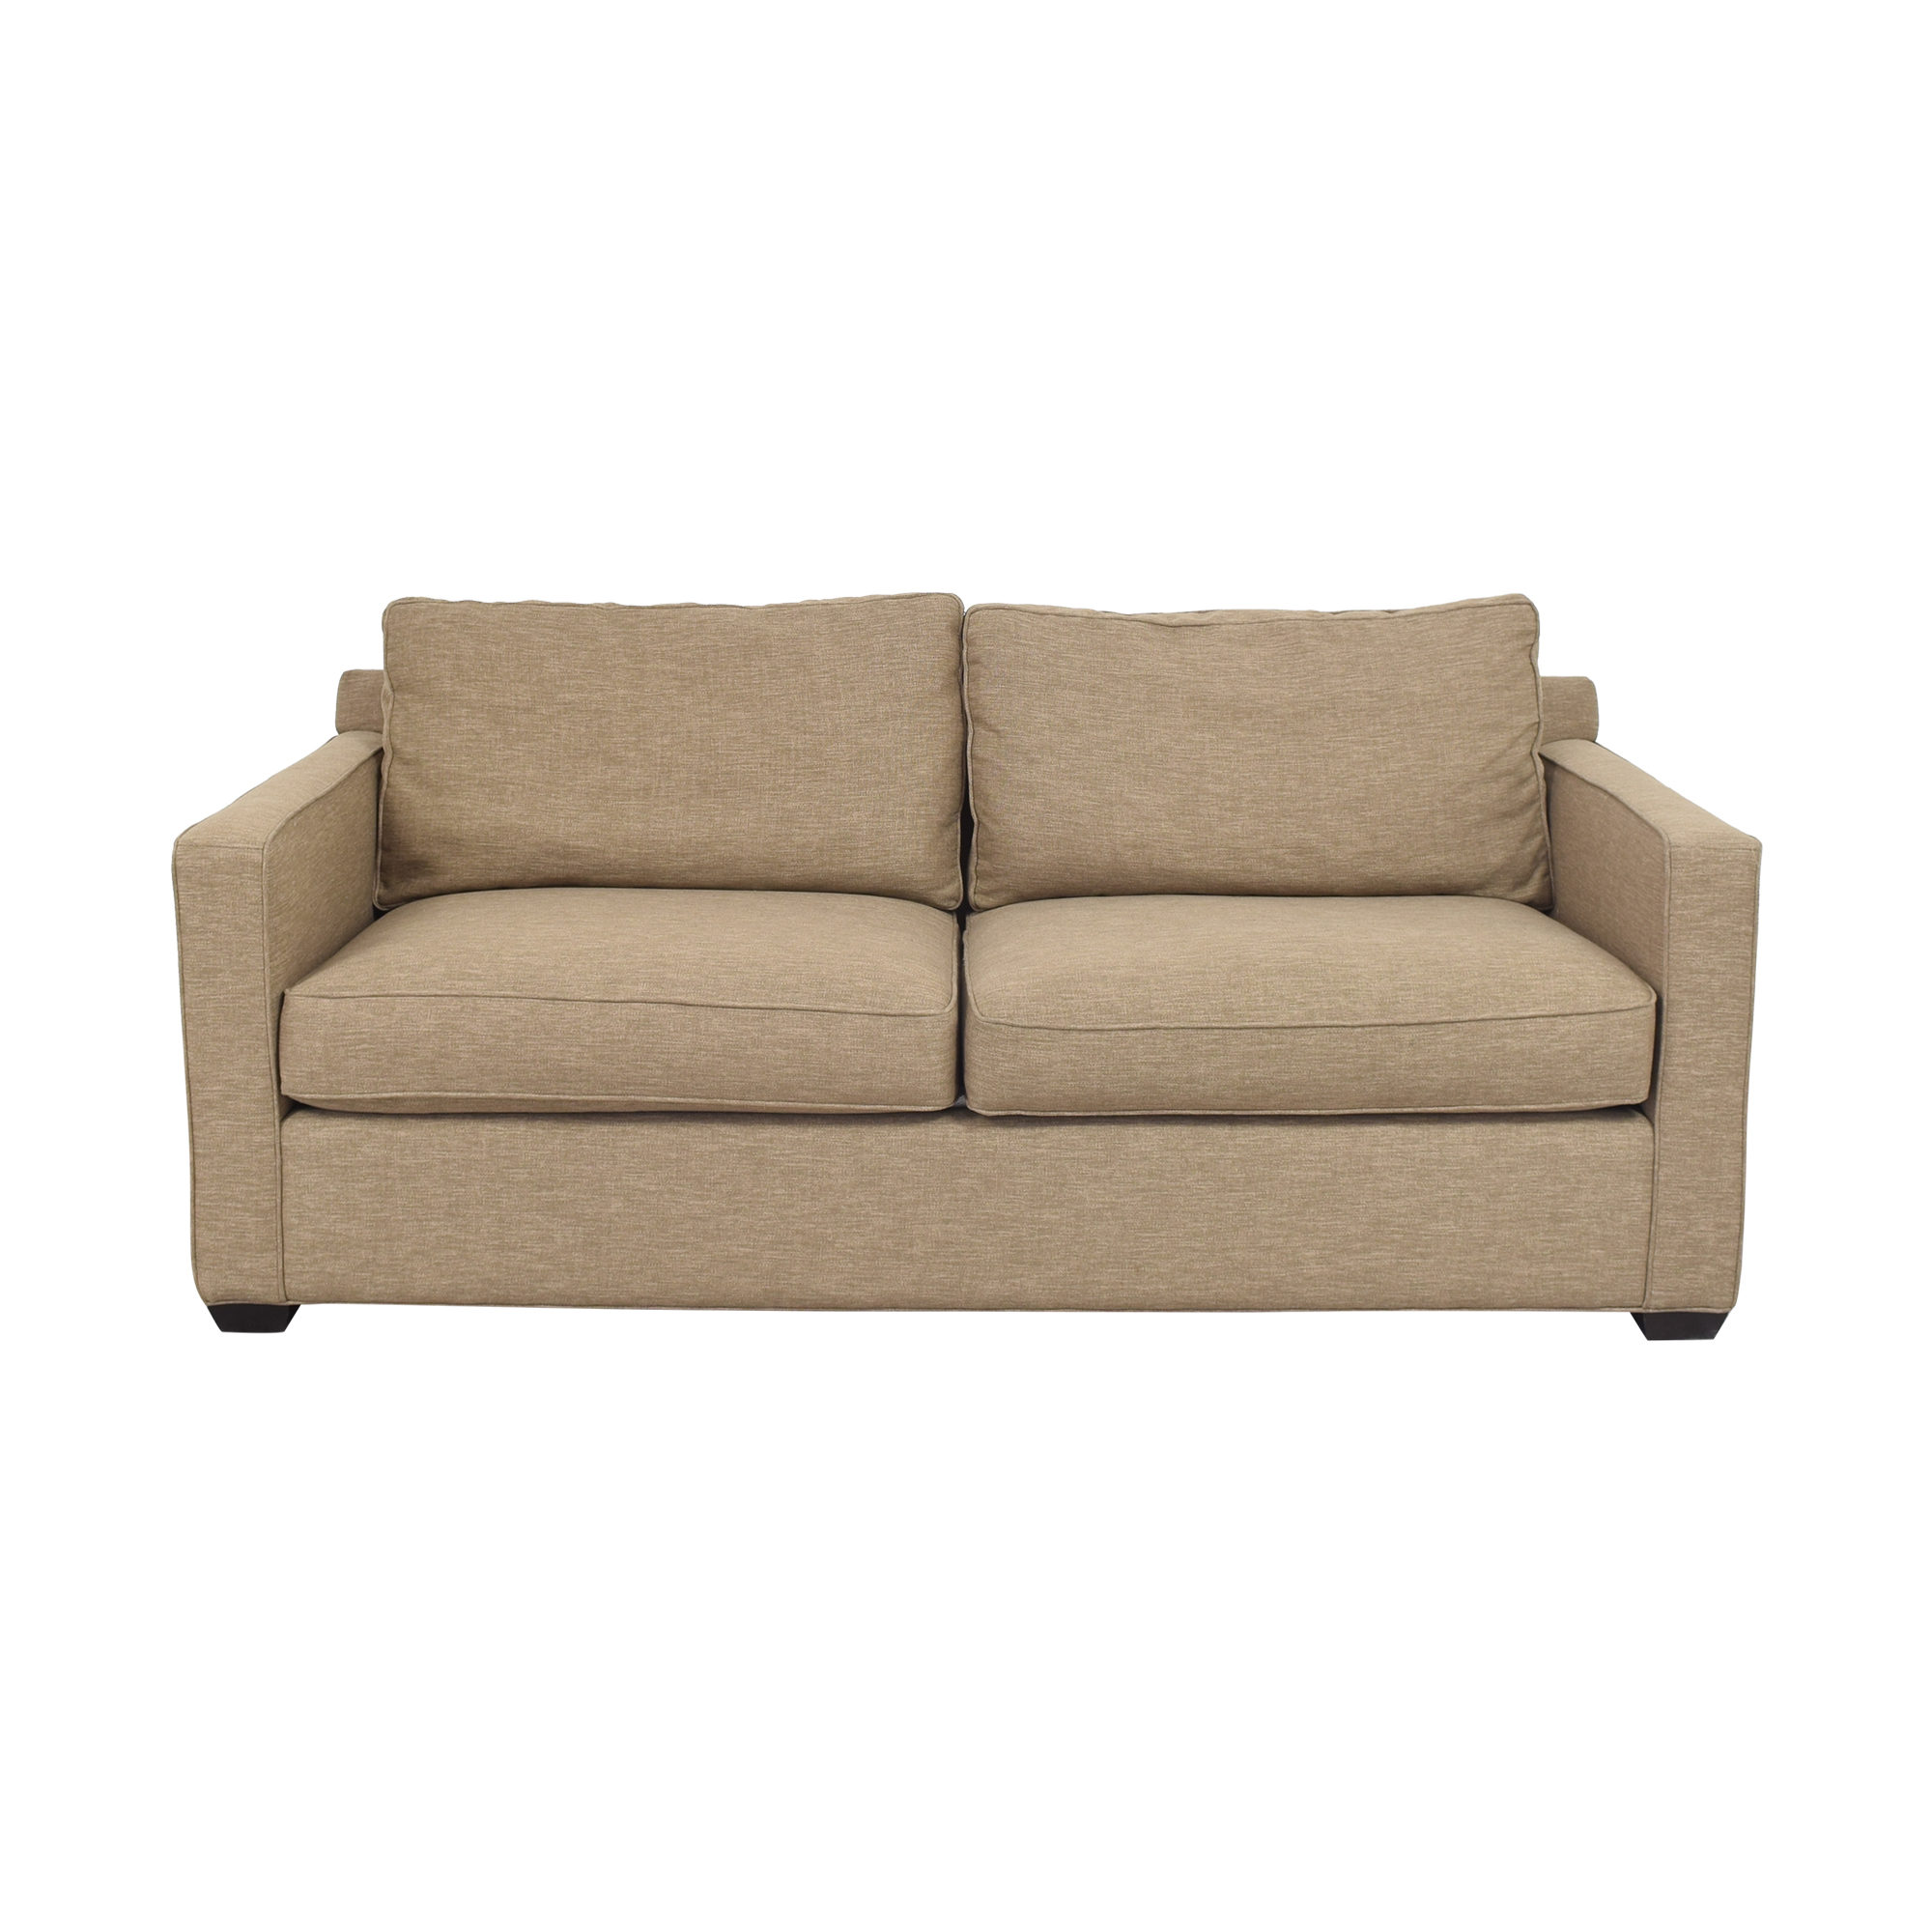 Crate & Barrel Crate & Barrel Davis Track Arm Sofa coupon